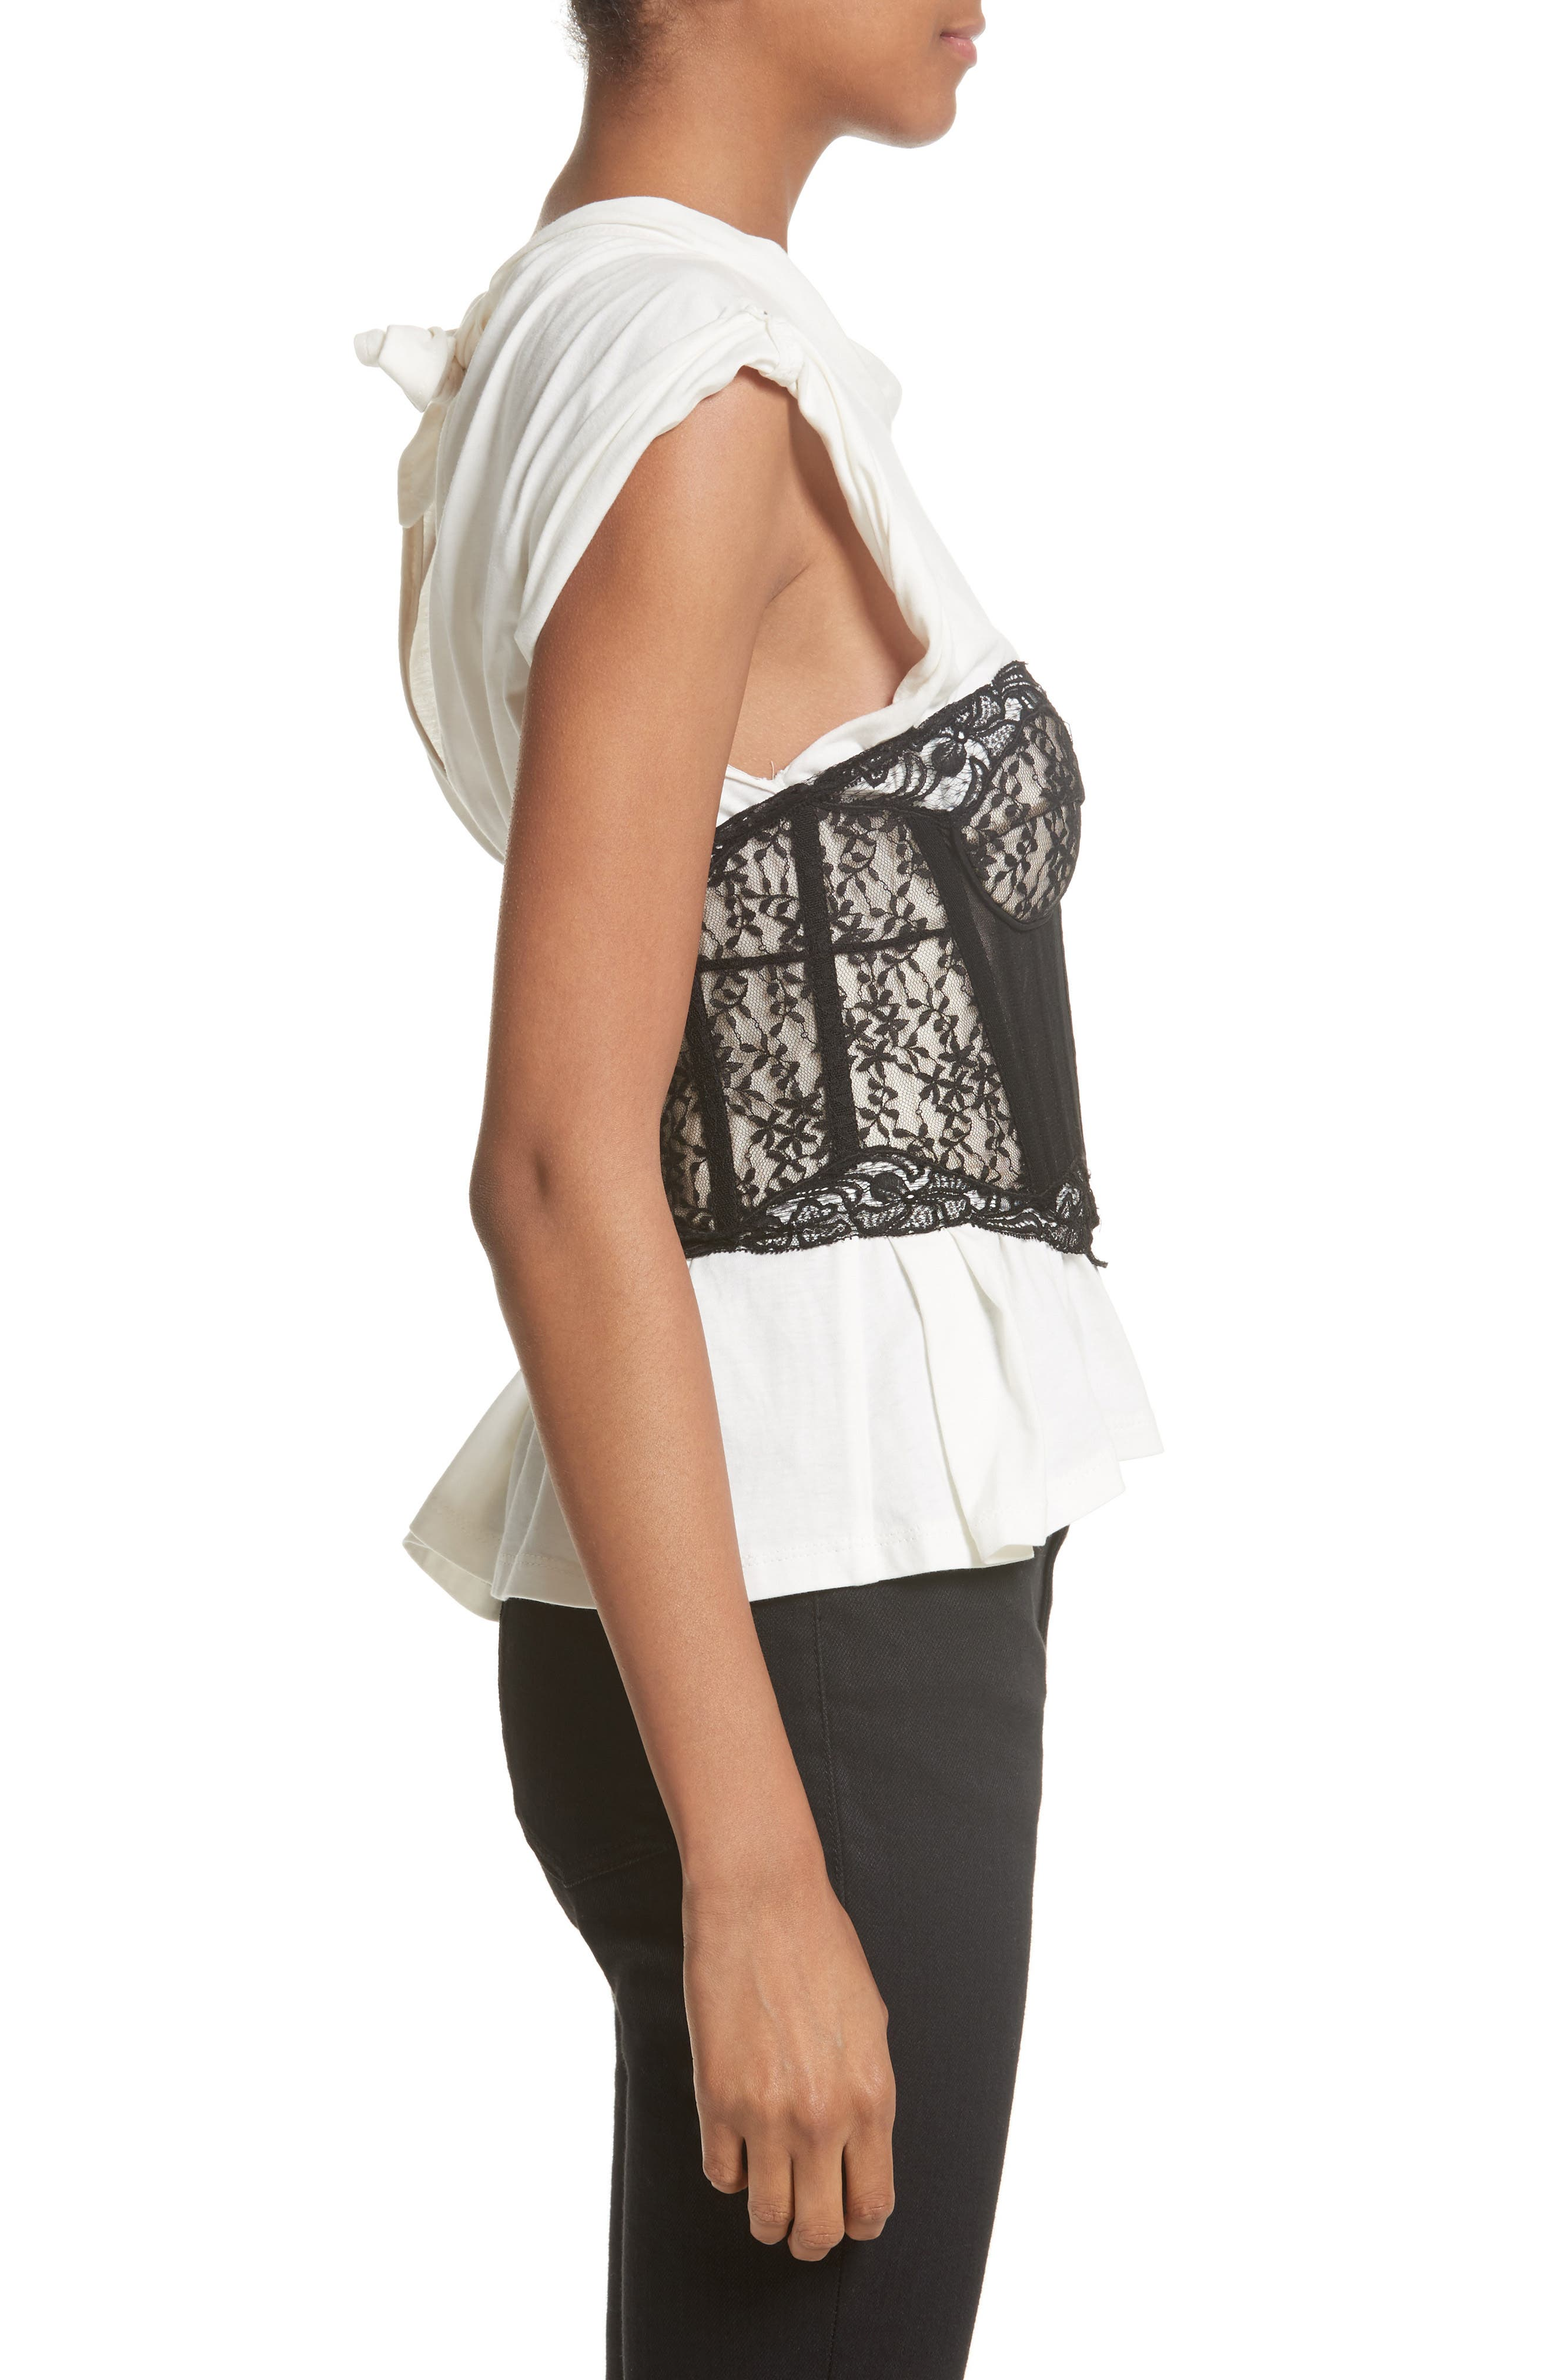 Cotton Top with Lace Bustier,                             Alternate thumbnail 3, color,                             900